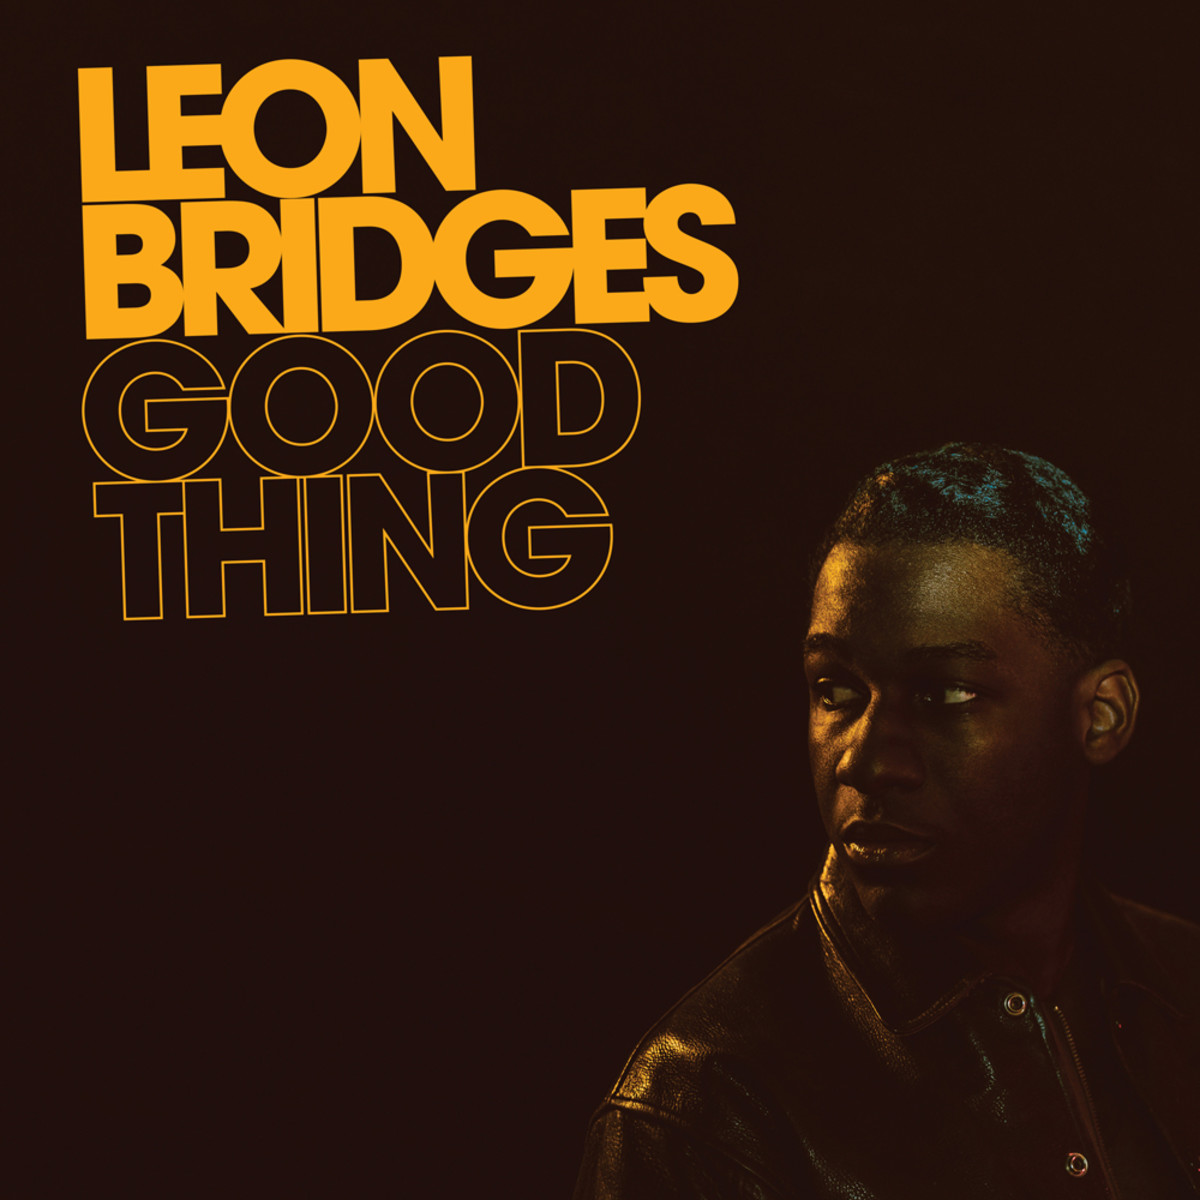 leon-bridges-good-thing-album-art